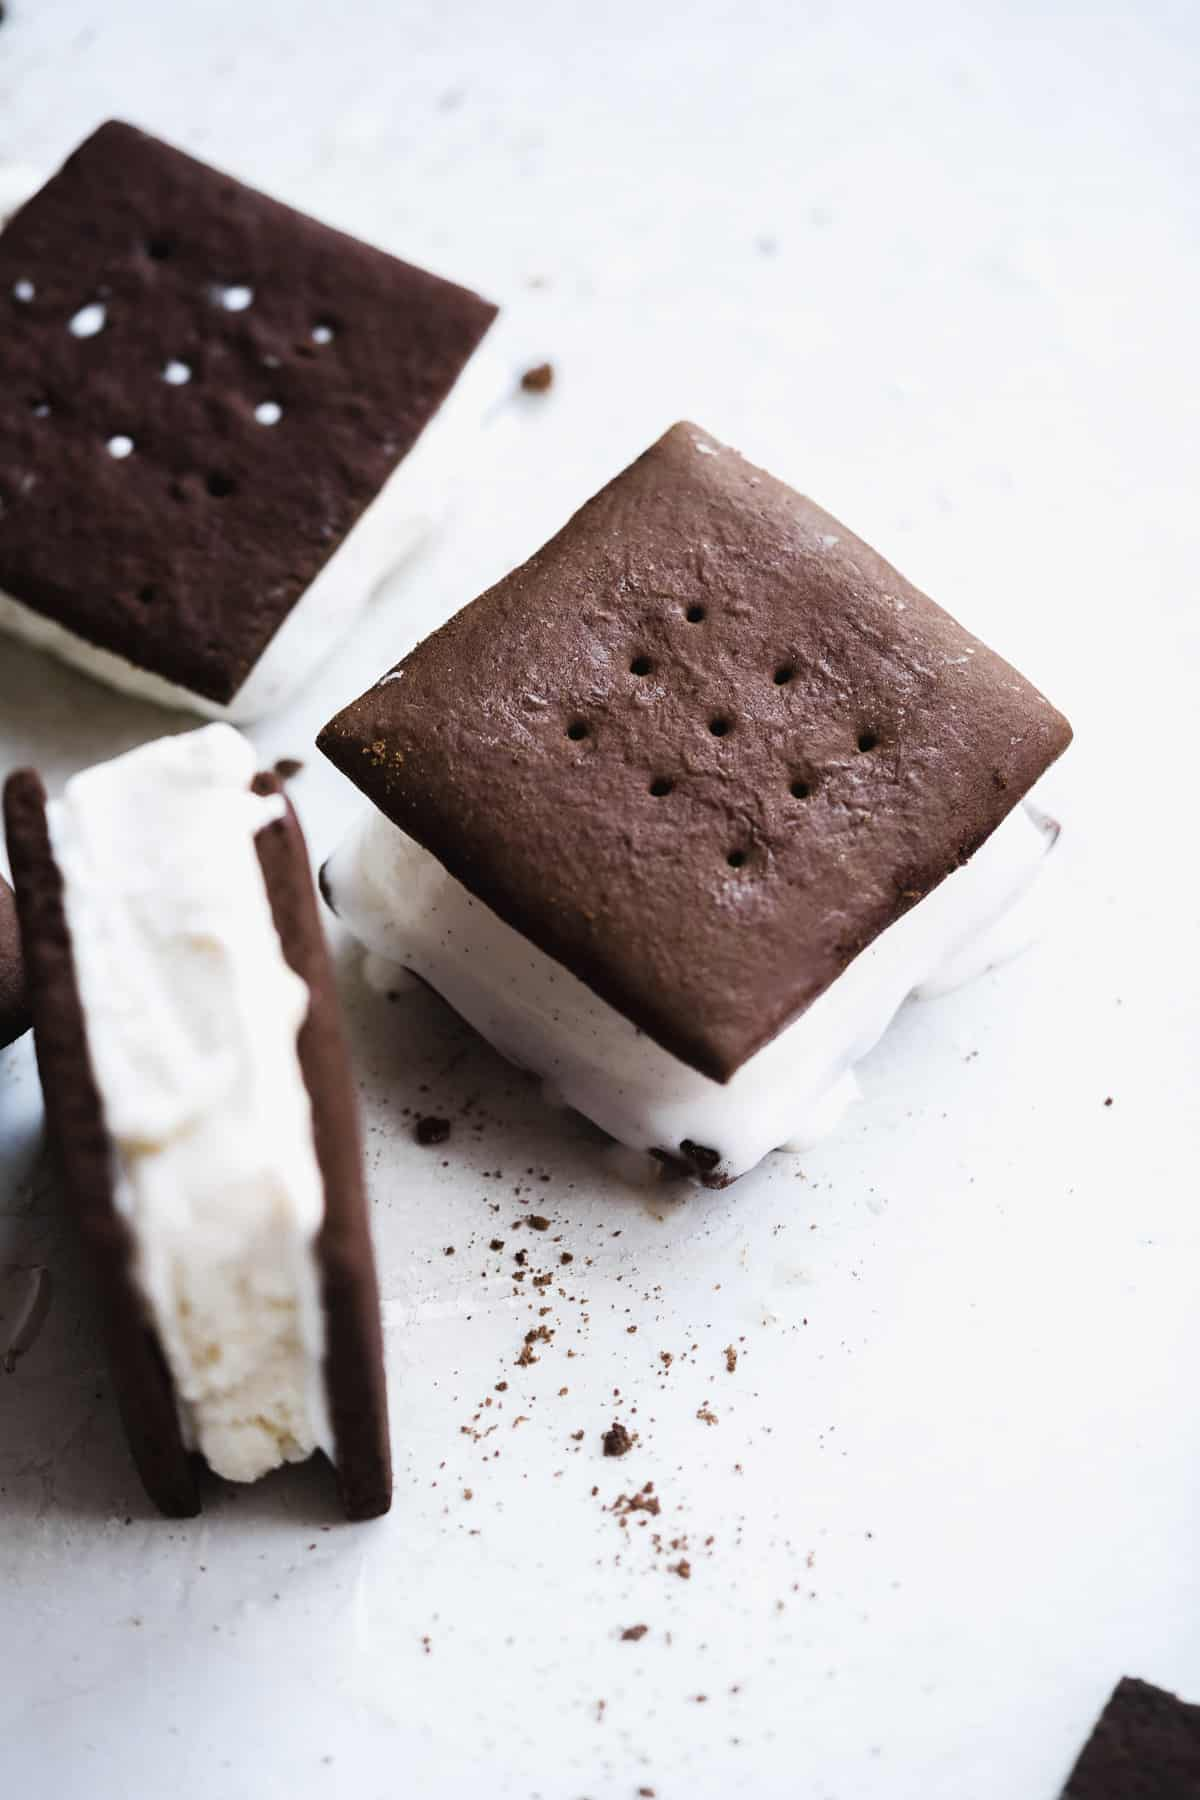 Chocolate ice cream sandwich with ice cream melting off the sides and one flipped upwards.